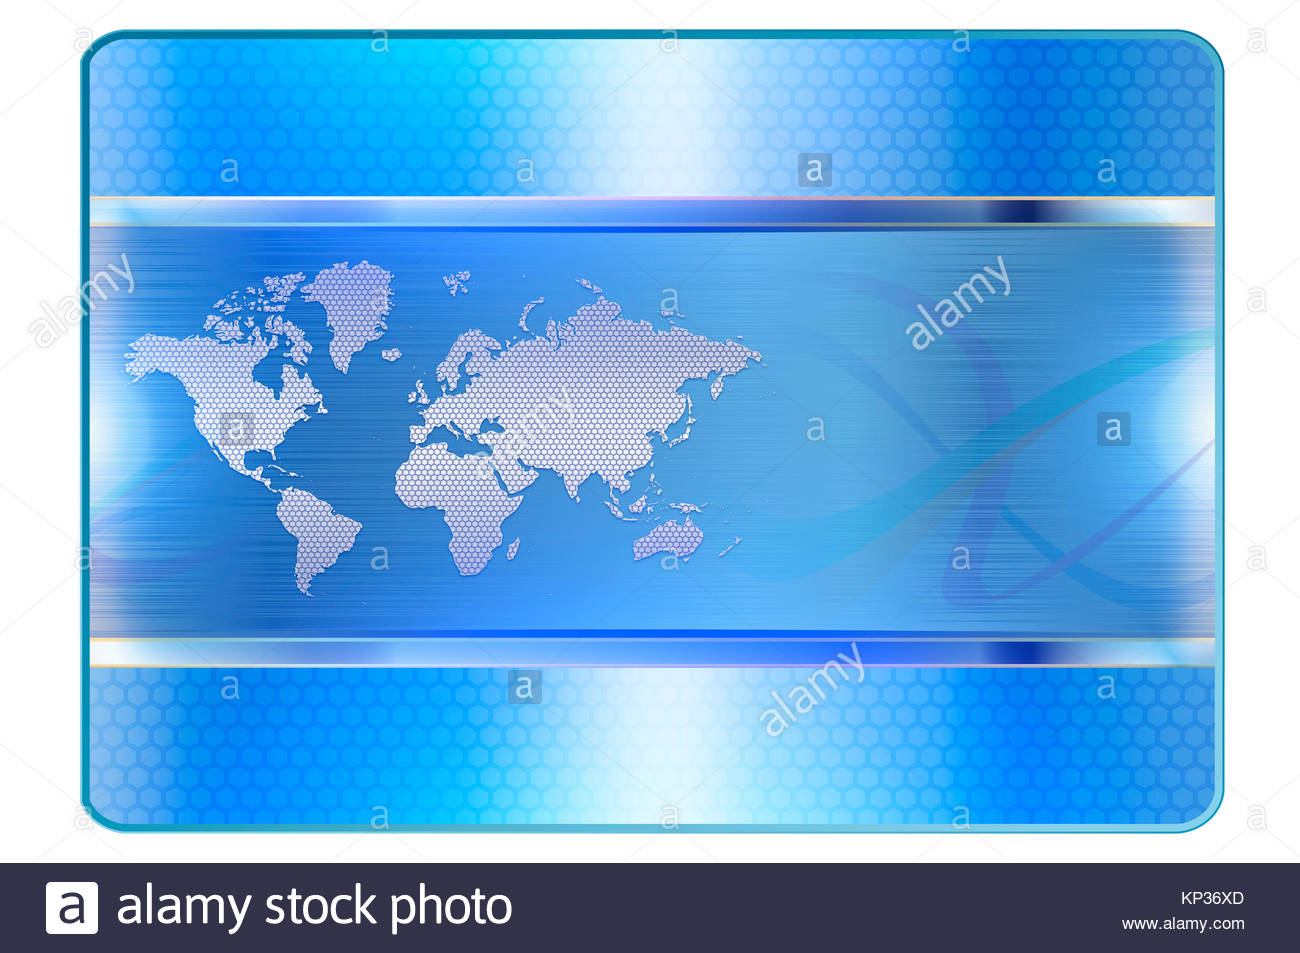 Template for the design of credit cardBlue abstract background 1300x953